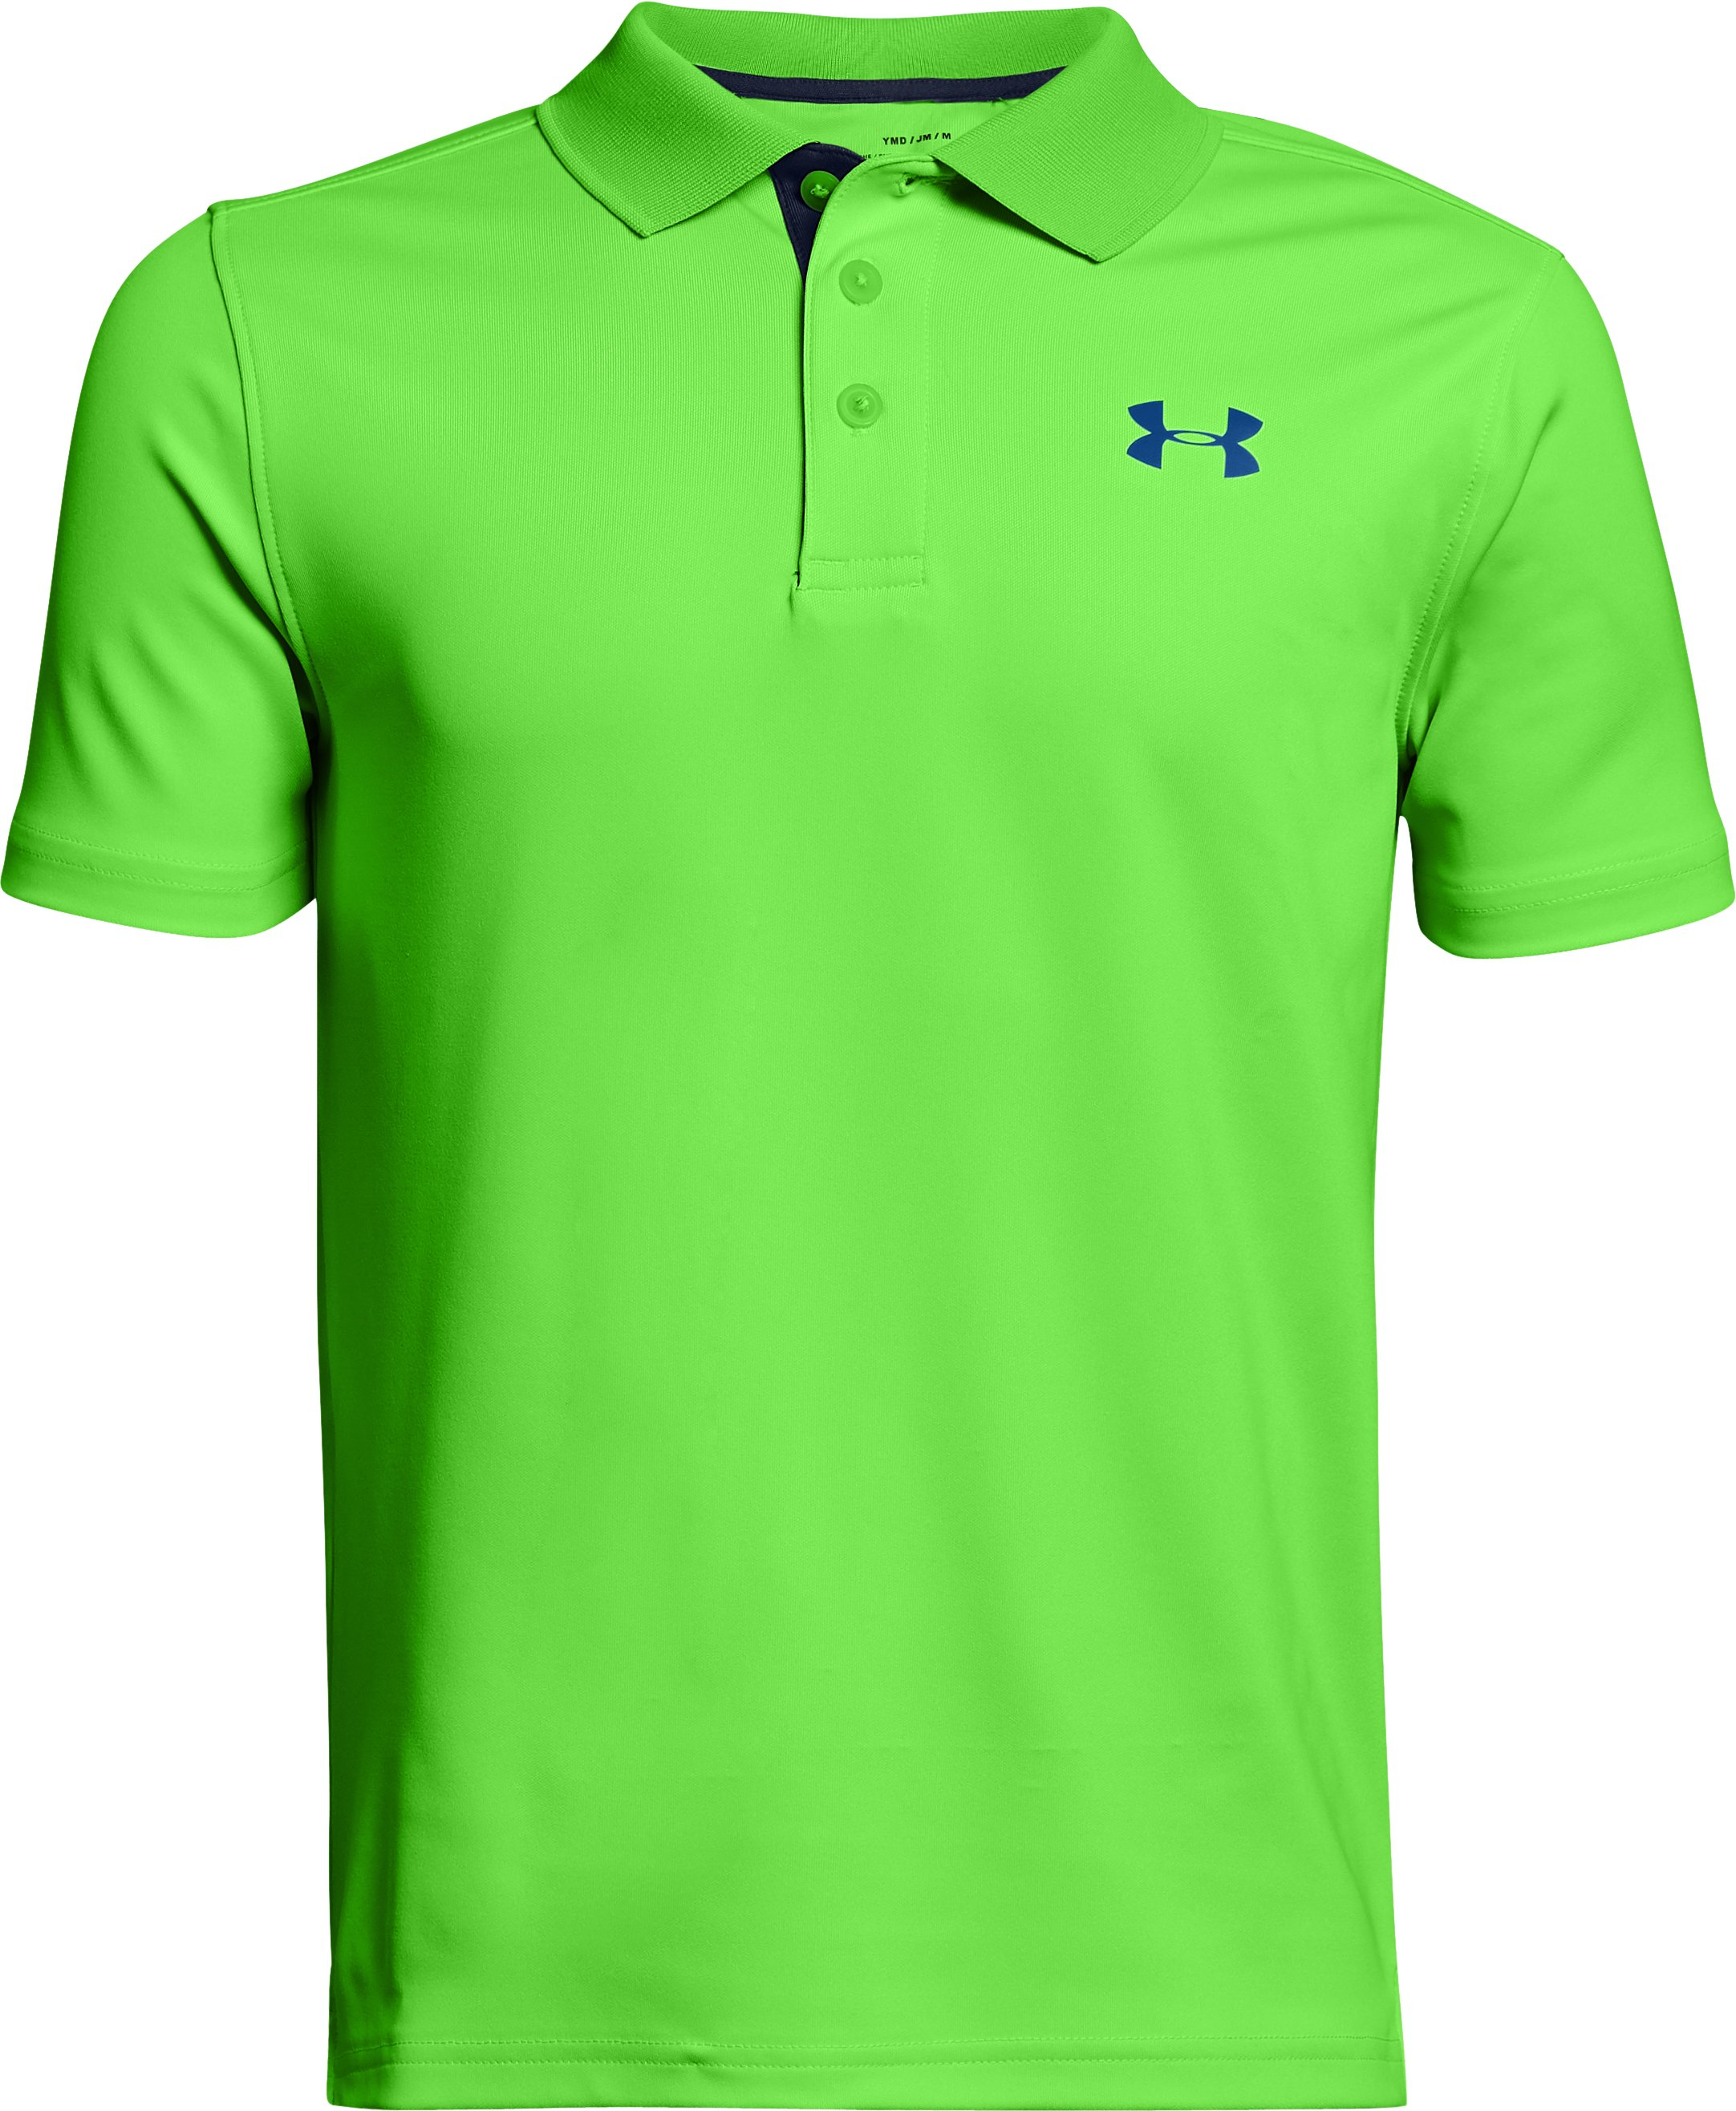 Boys' UA Performance Polo, Poison, undefined